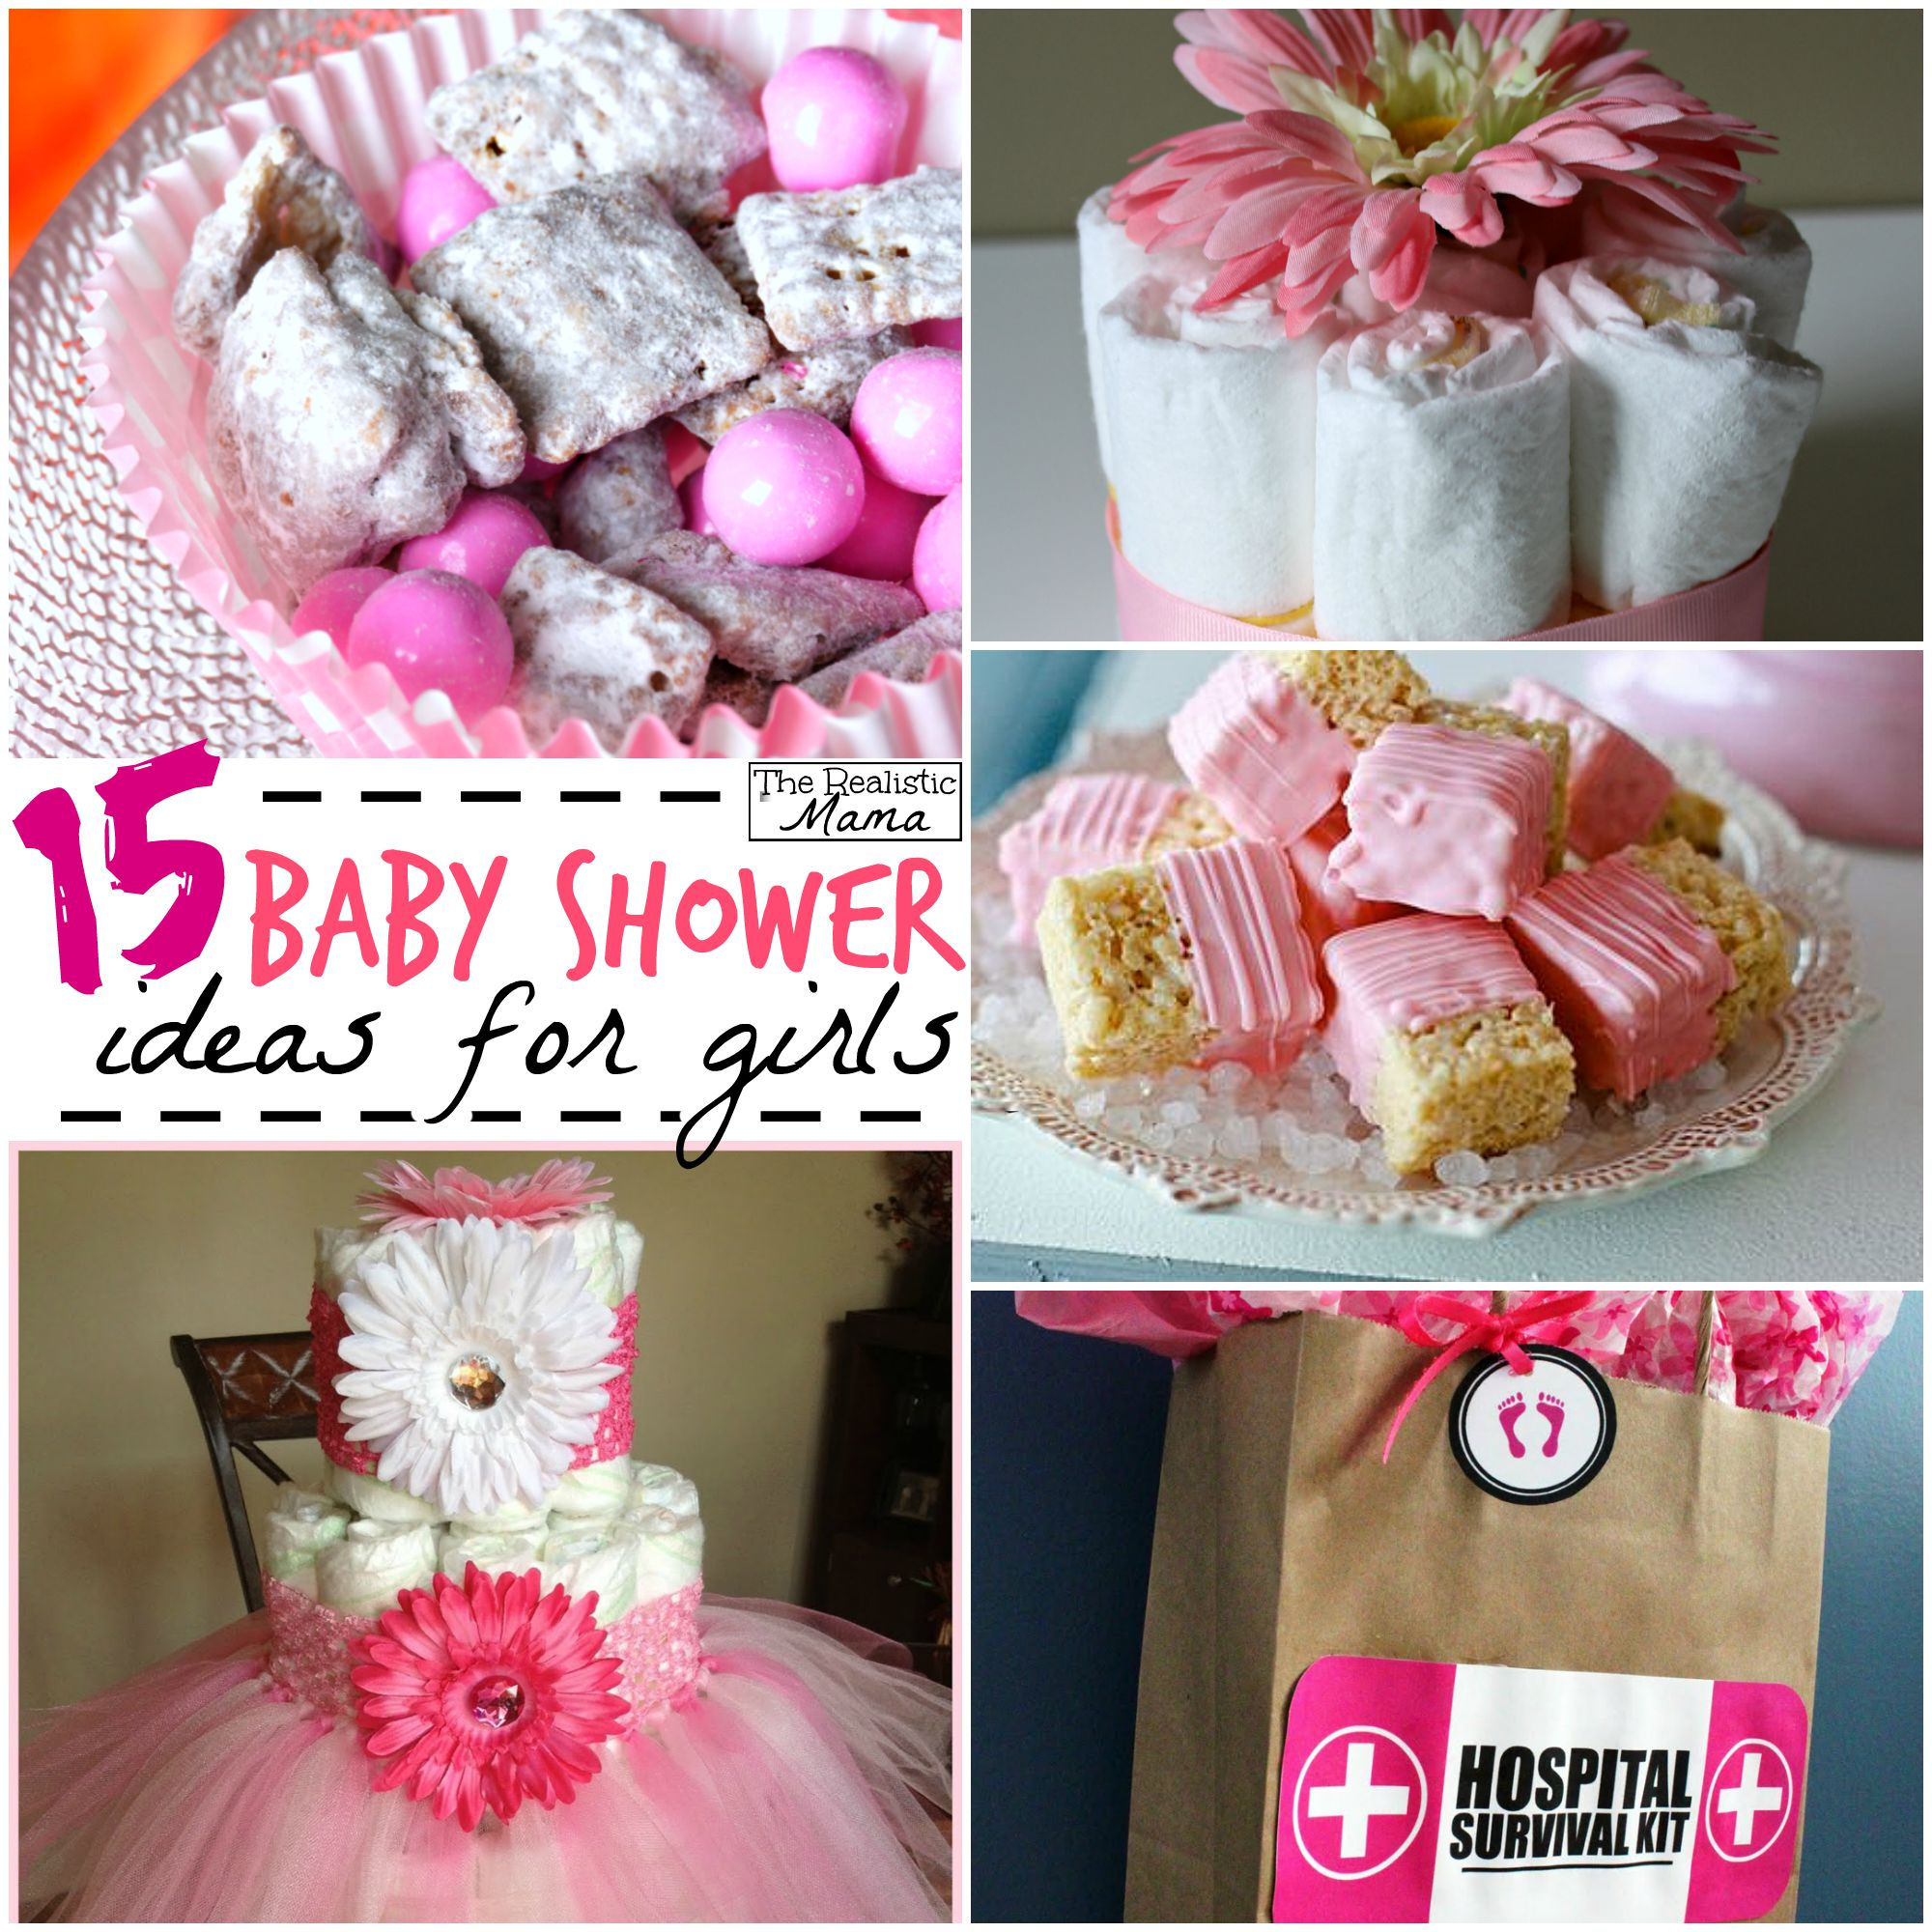 13e63d798a79b 15 Baby Shower Ideas for Girls - The Realistic Mama